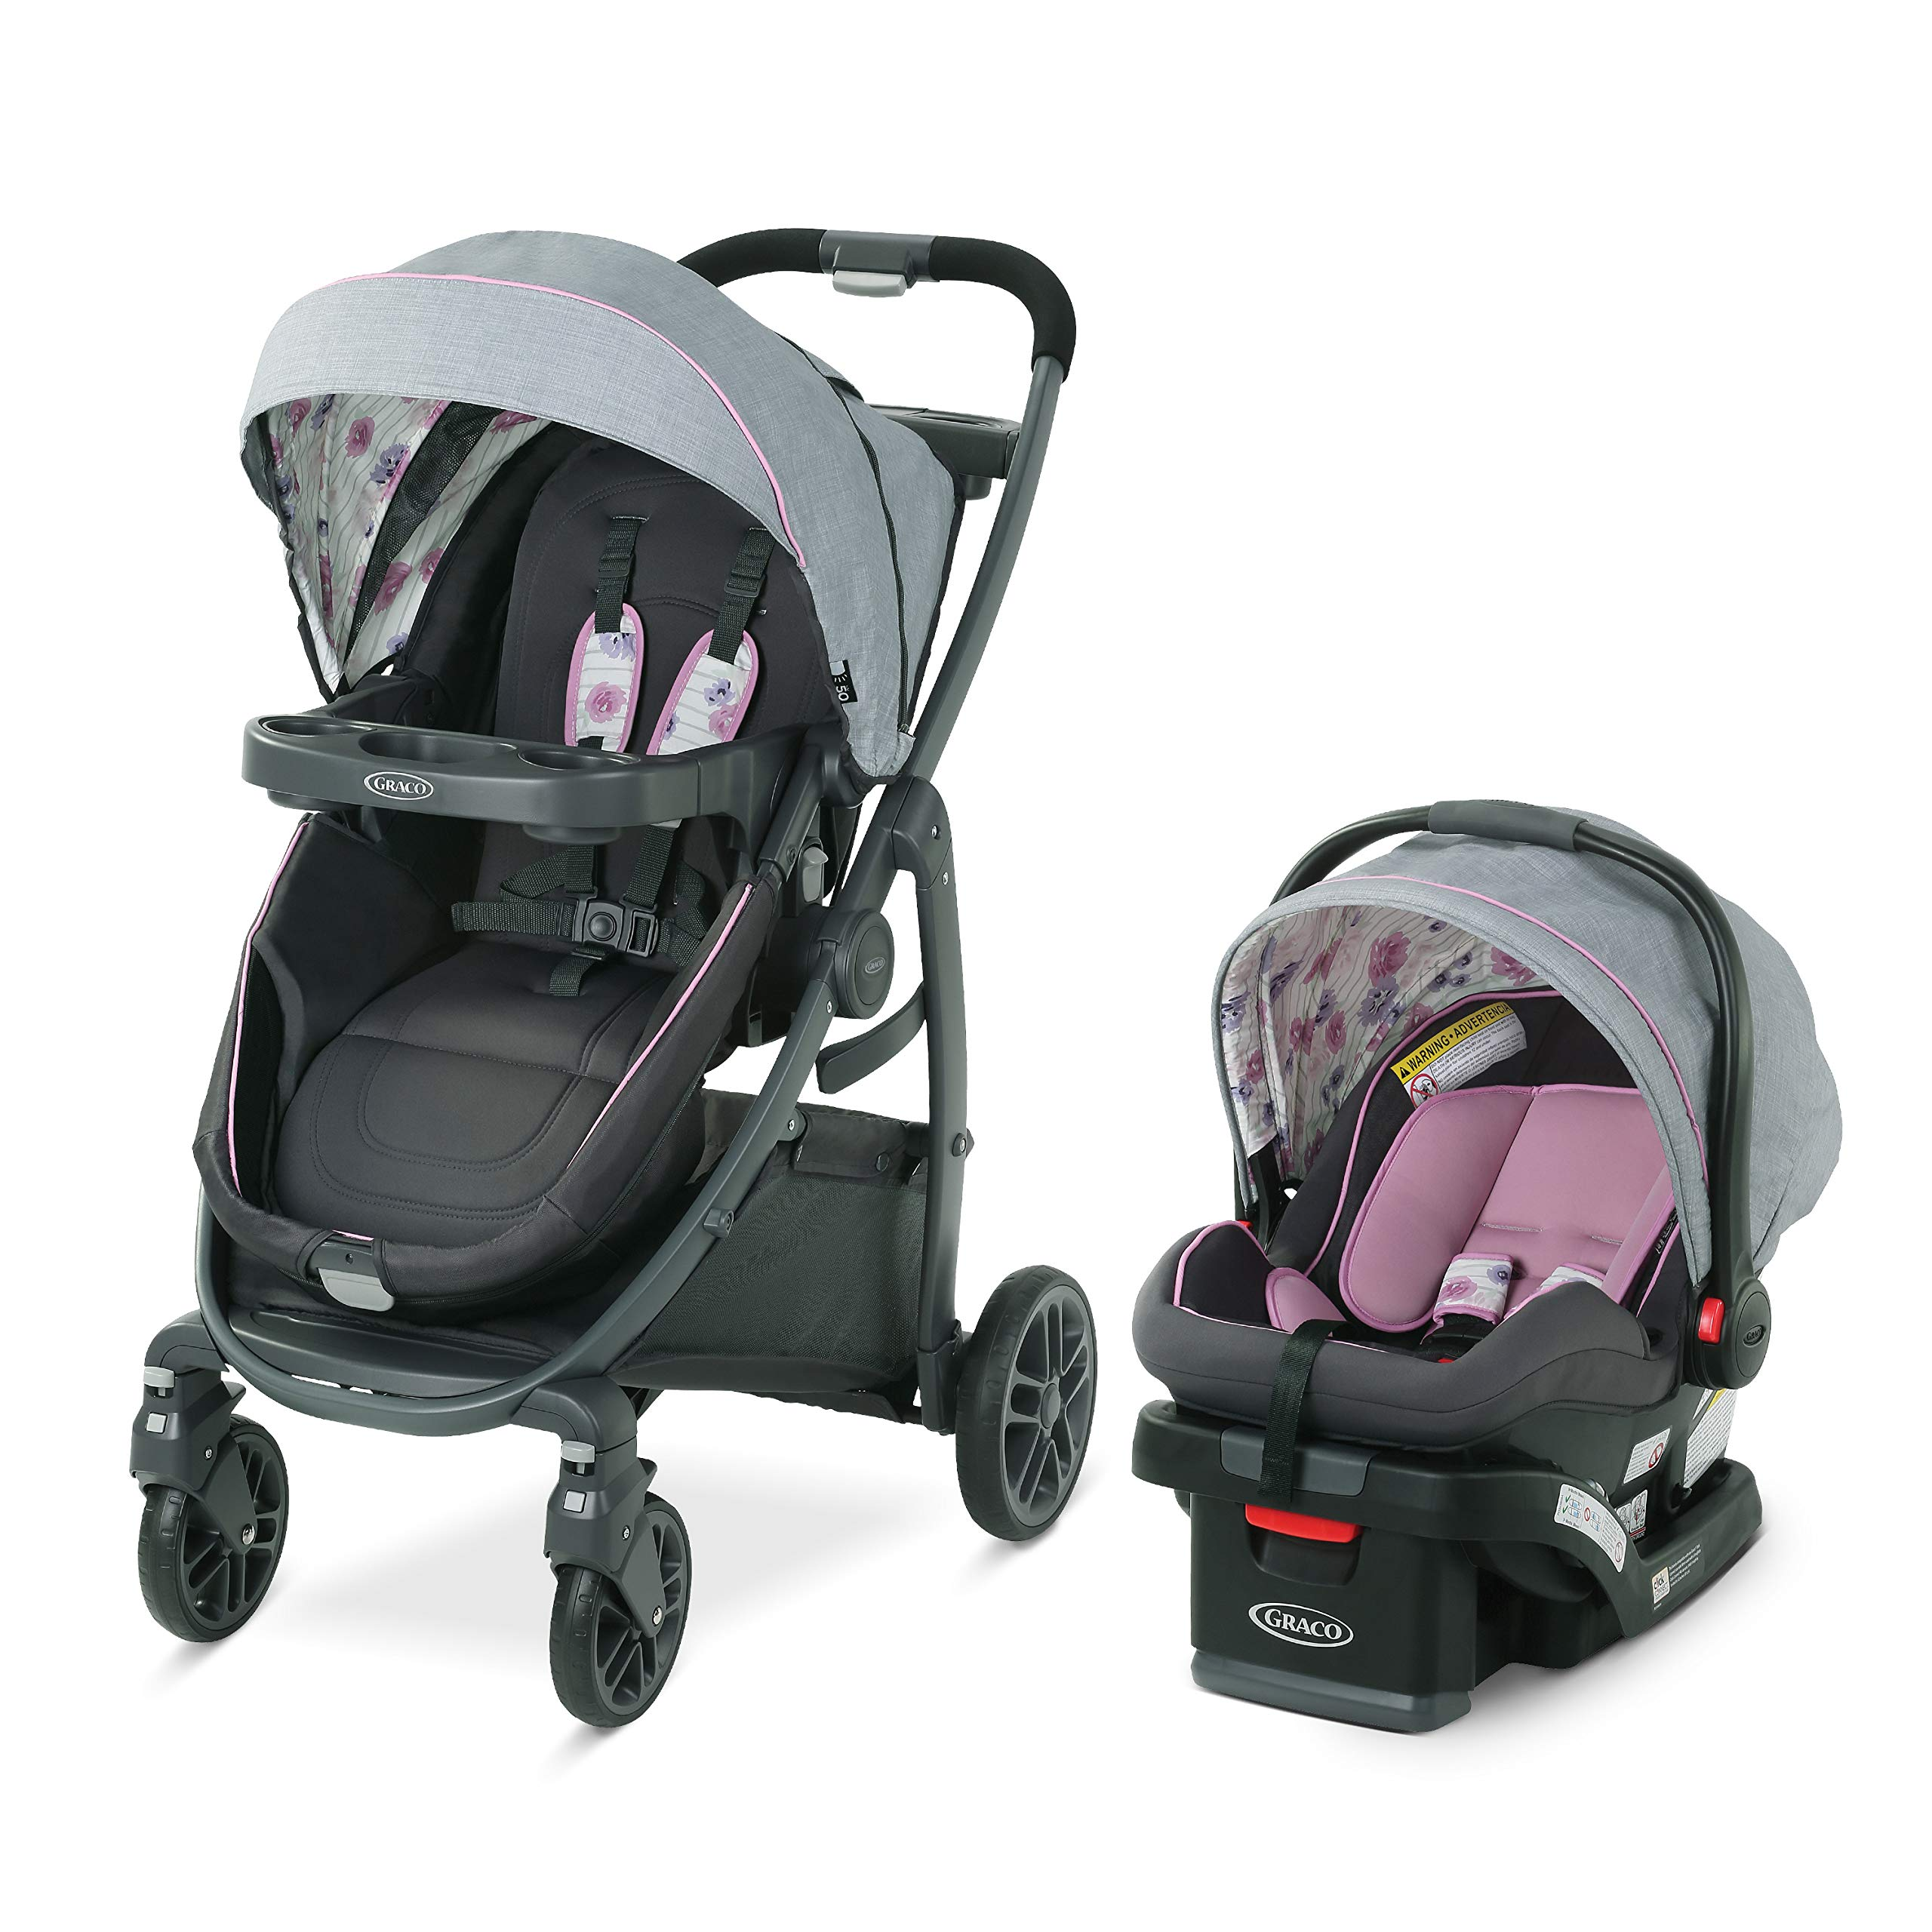 Graco Modes Bassinet Travel System | Includes Modes Bassinet Stroller and SnugRide SnugLock 35 Infant Car Seat, Carlee by Graco